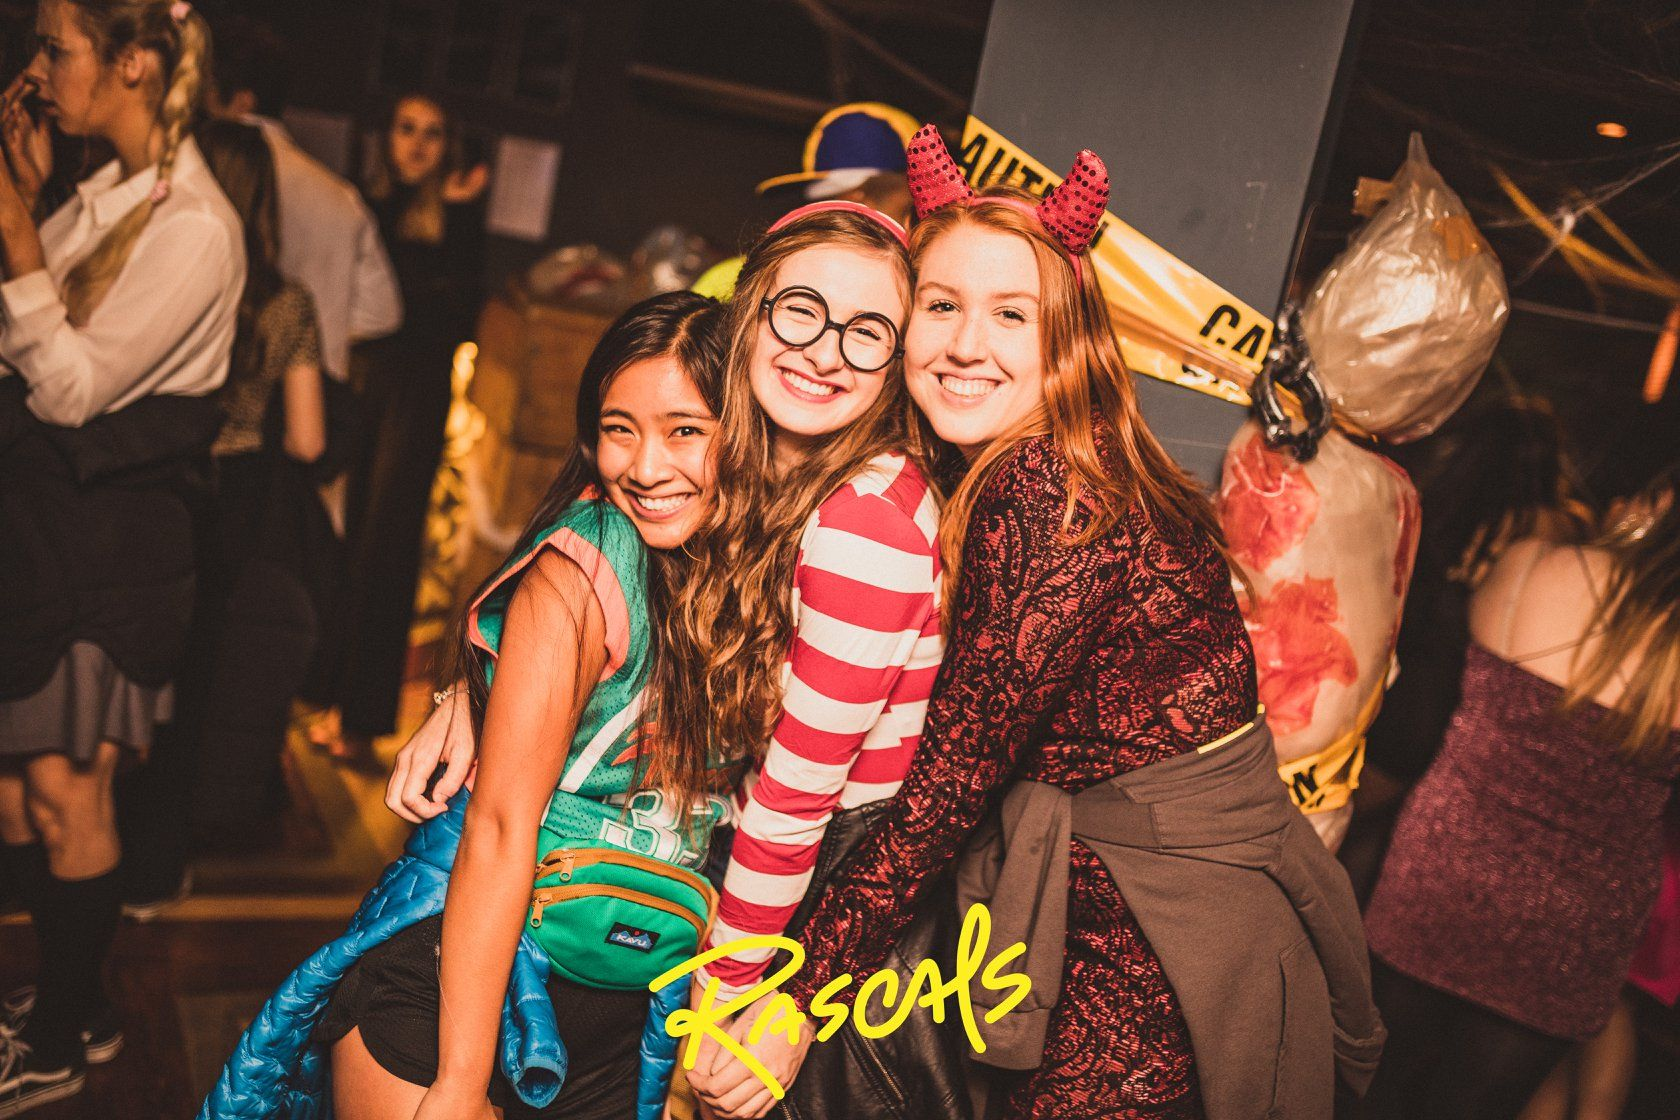 Image may contain: Night Life, Disco, Leisure Activities, Party, Night Club, Club, Person, Human